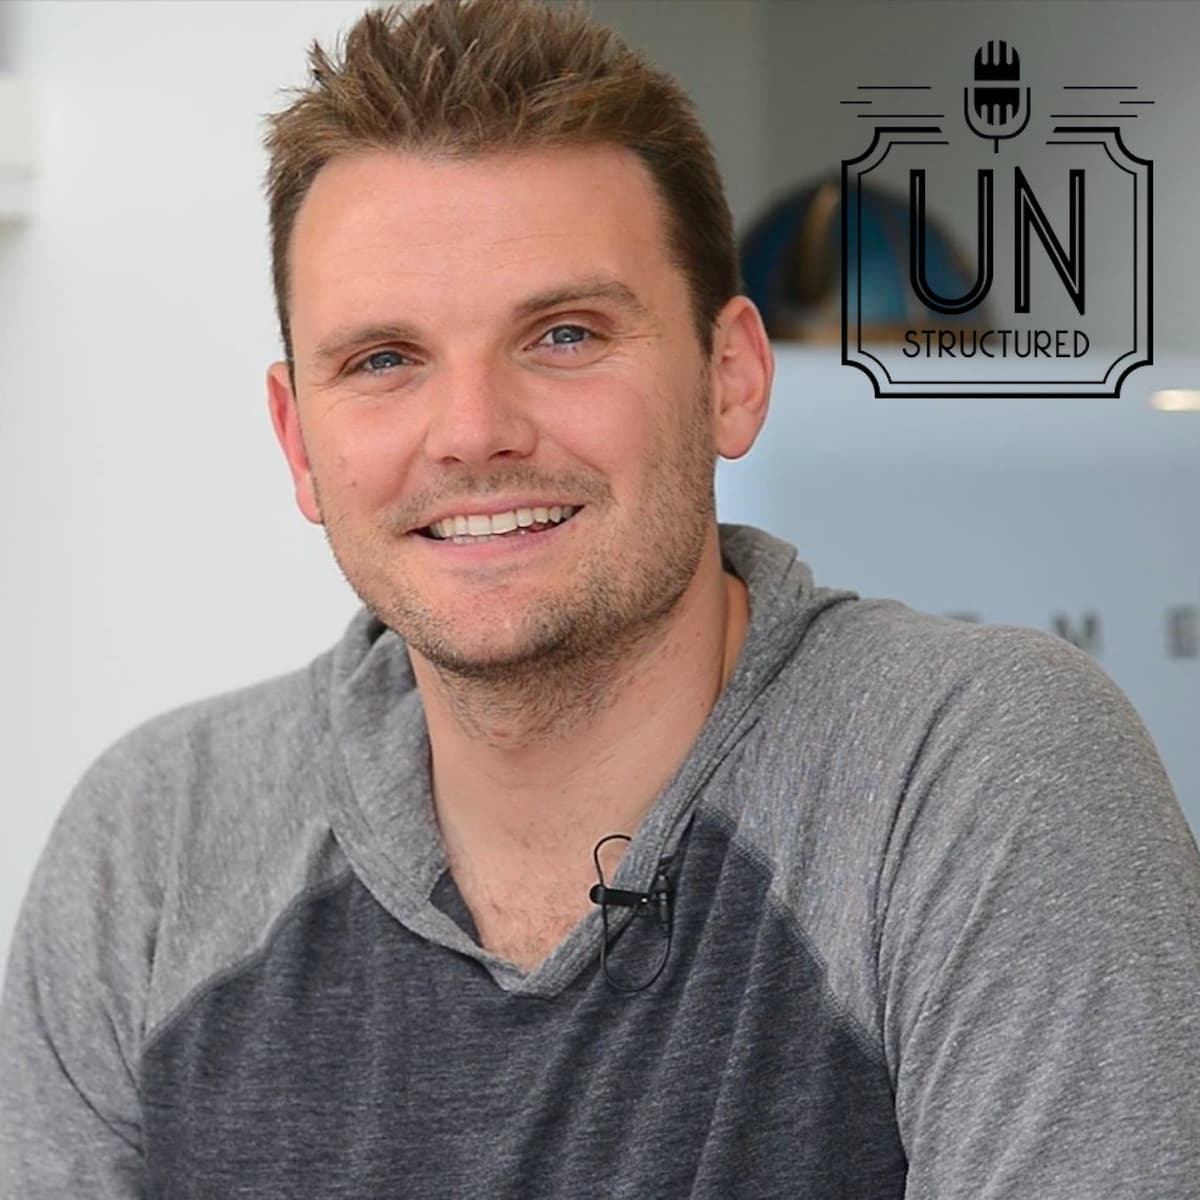 175 - Tommy Griffith - Unique wide-ranging and well-researched unstructured interviews hosted by Eric Hunley UnstructuredPod Dynamic Informal Conversations